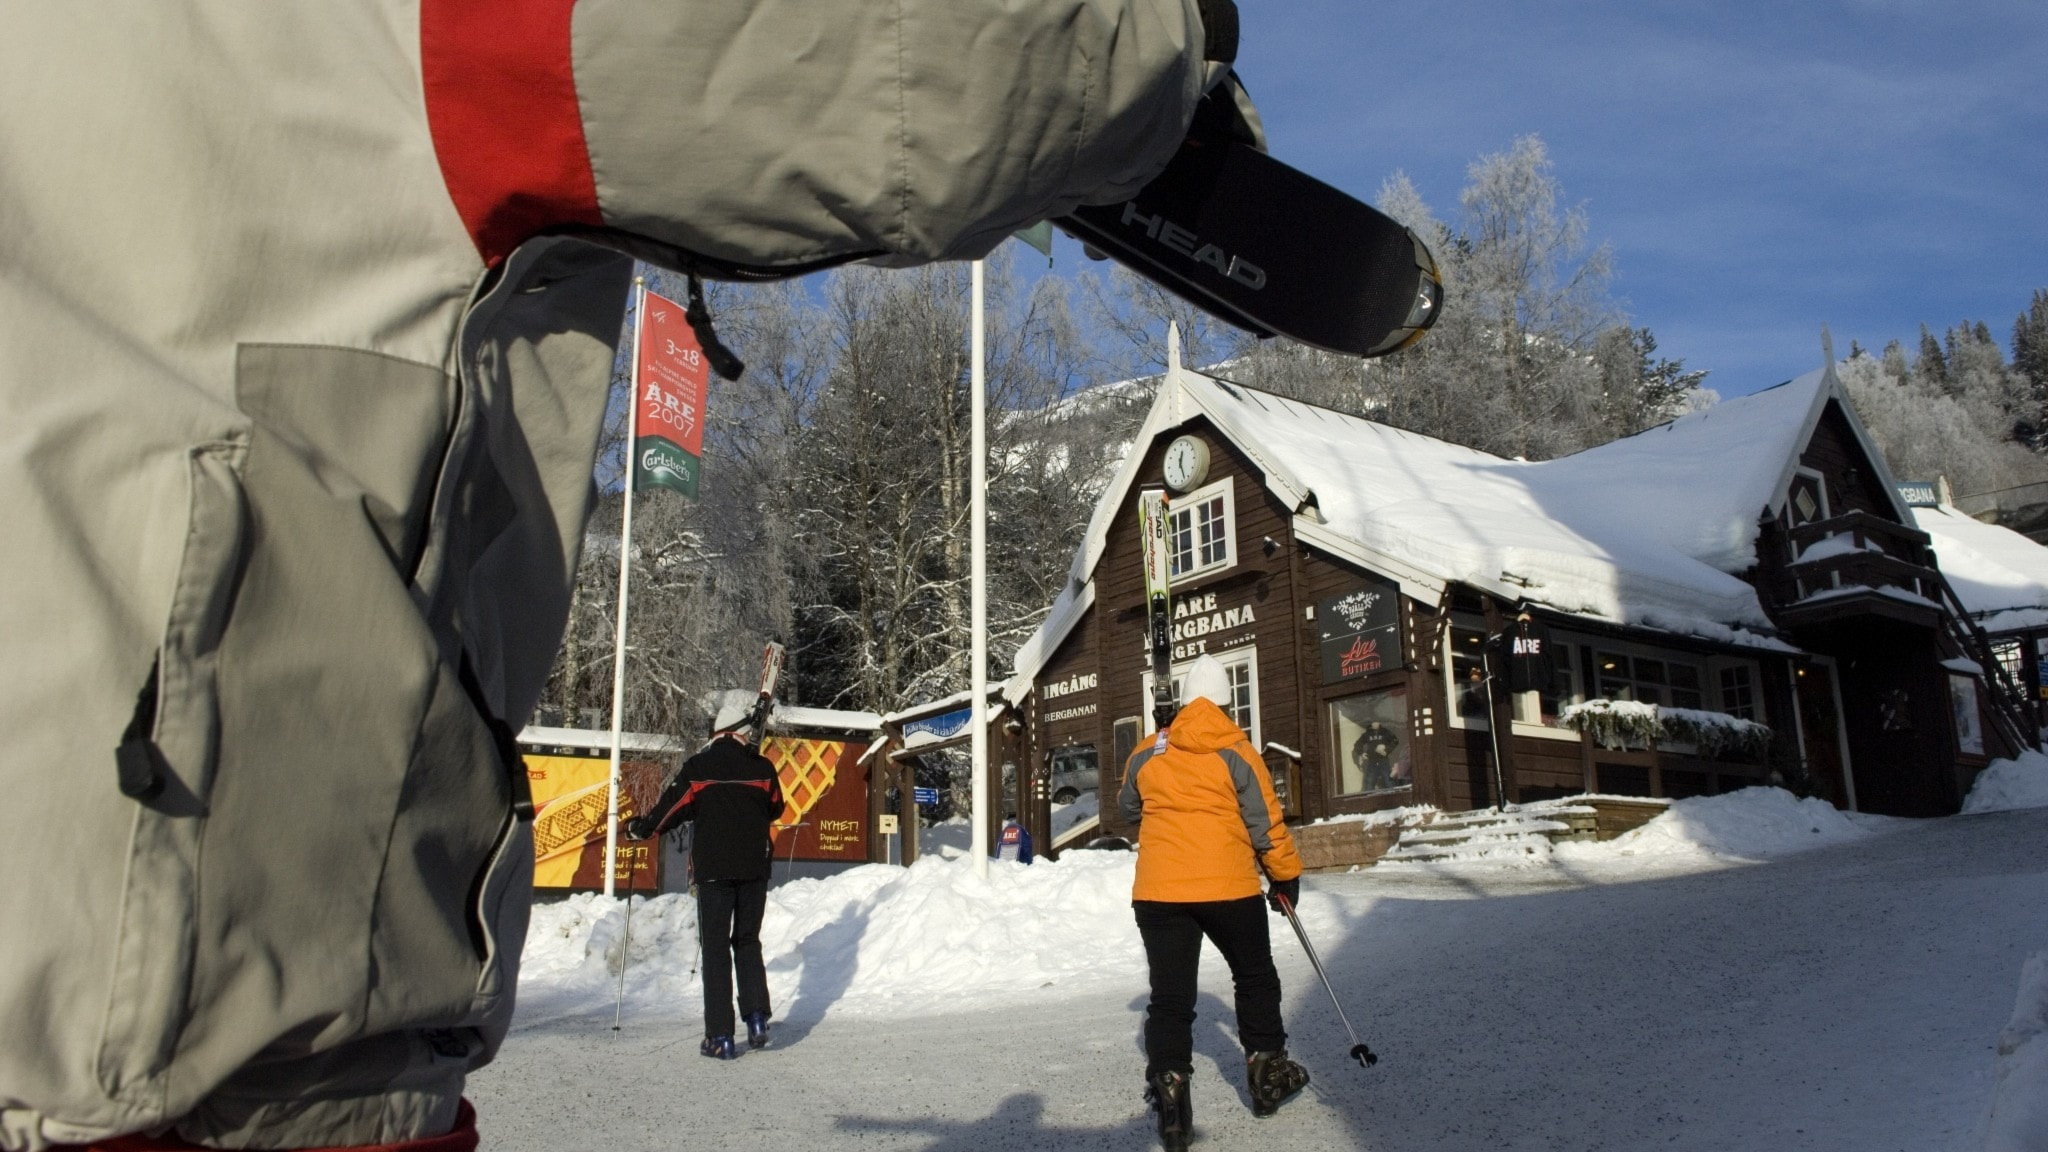 People dressed in skiing gear outdoors on a sunny, snowy day, in front of a building and slope.